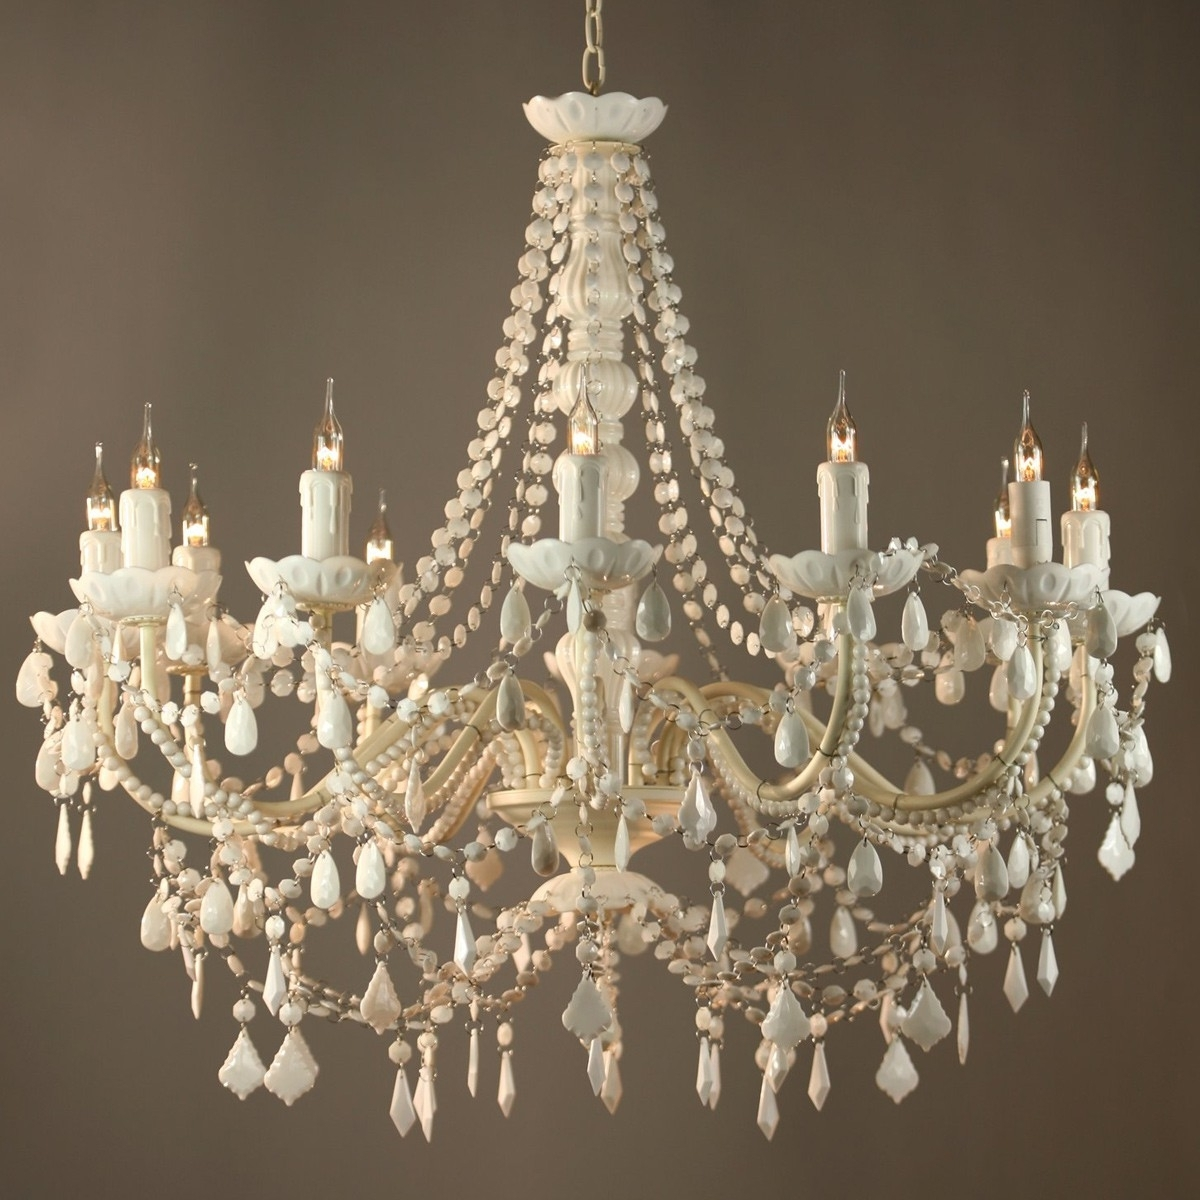 Vintage Style Chandeliers intended for Trendy Chandeliers Vintage